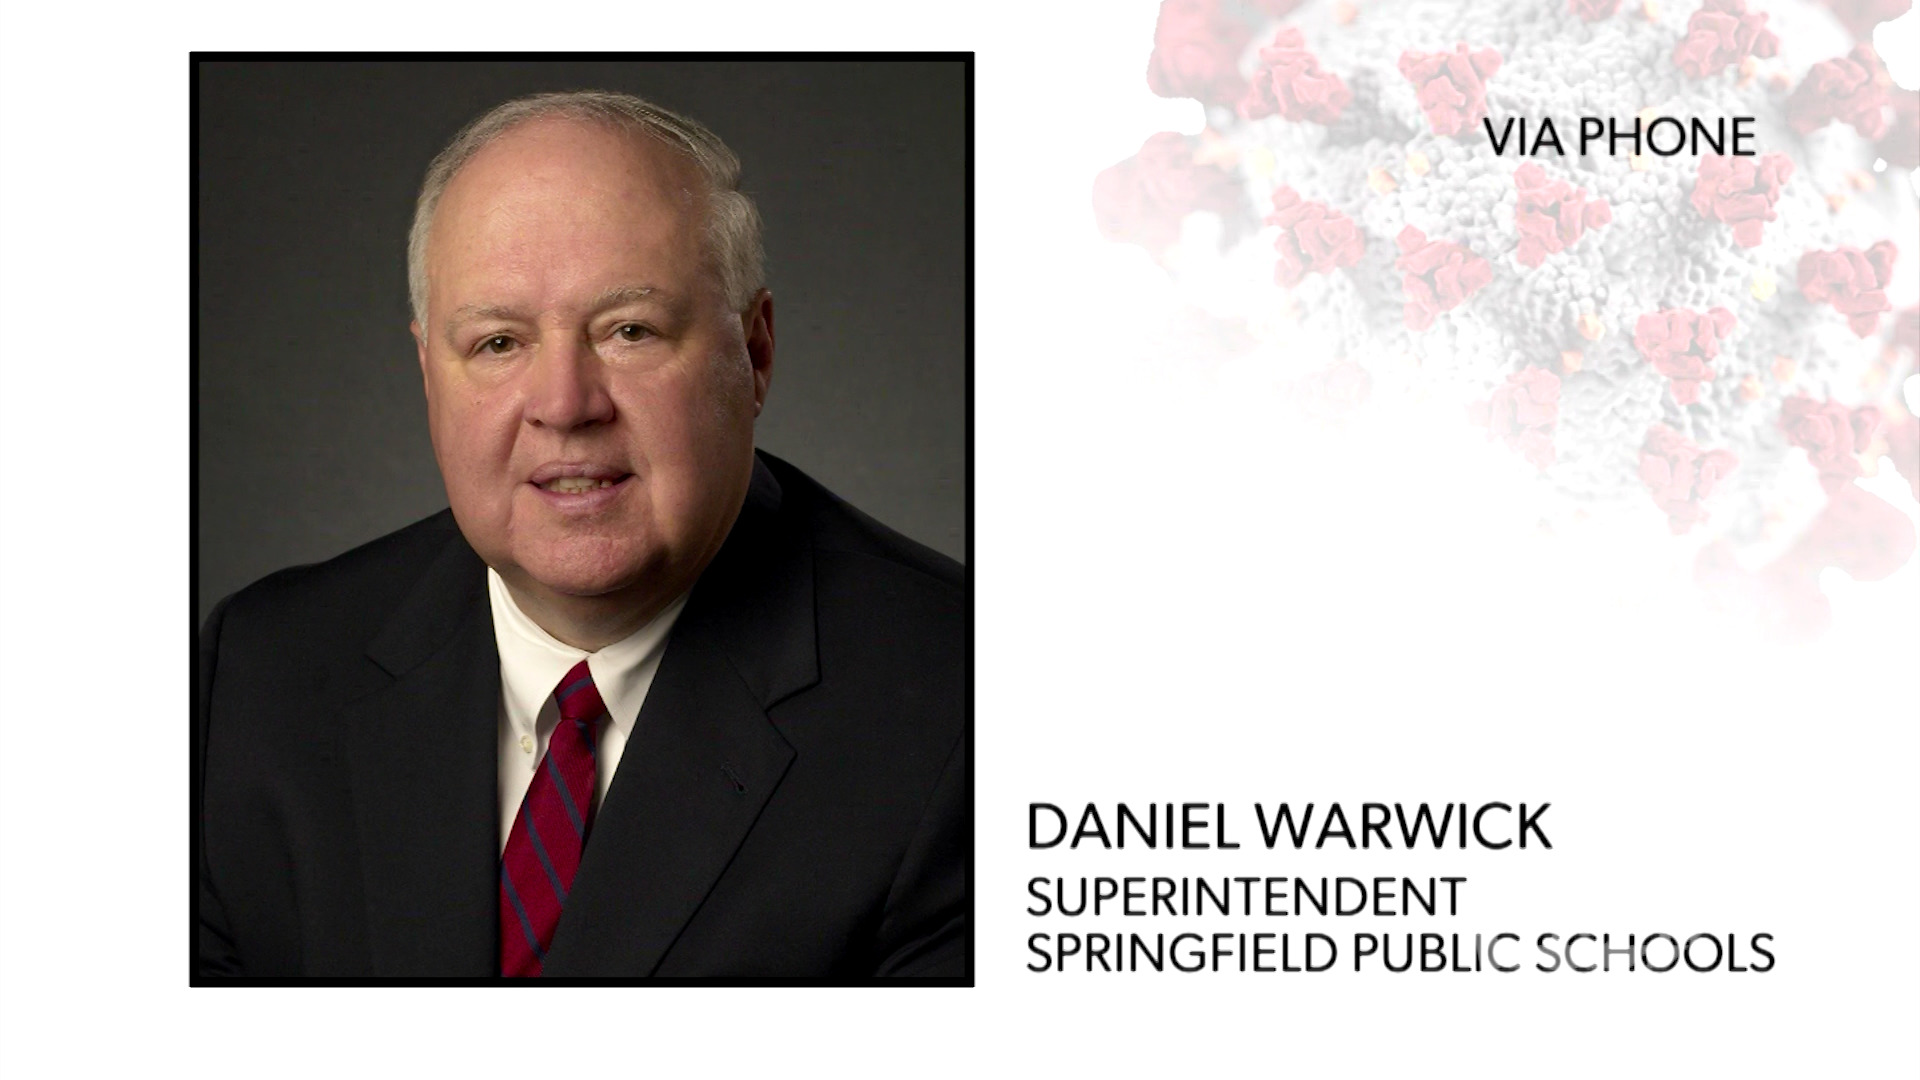 WATCH: Superintendent Daniel Warwick explains how Springfield Public Schools are supporting students with remote learning during the coronavirus pandemic.